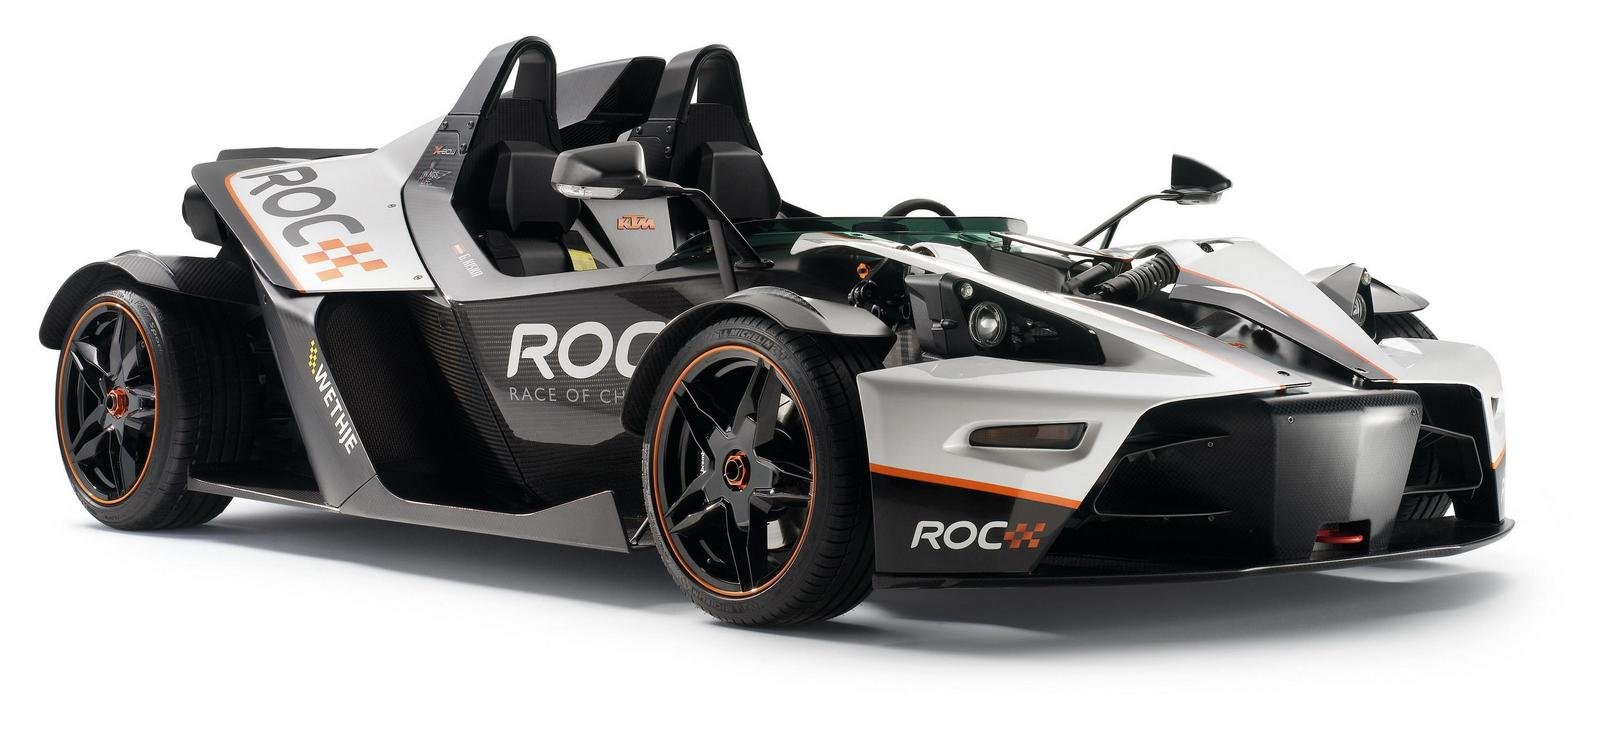 2009 ktm x bow roc picture 289006 car review top speed. Black Bedroom Furniture Sets. Home Design Ideas